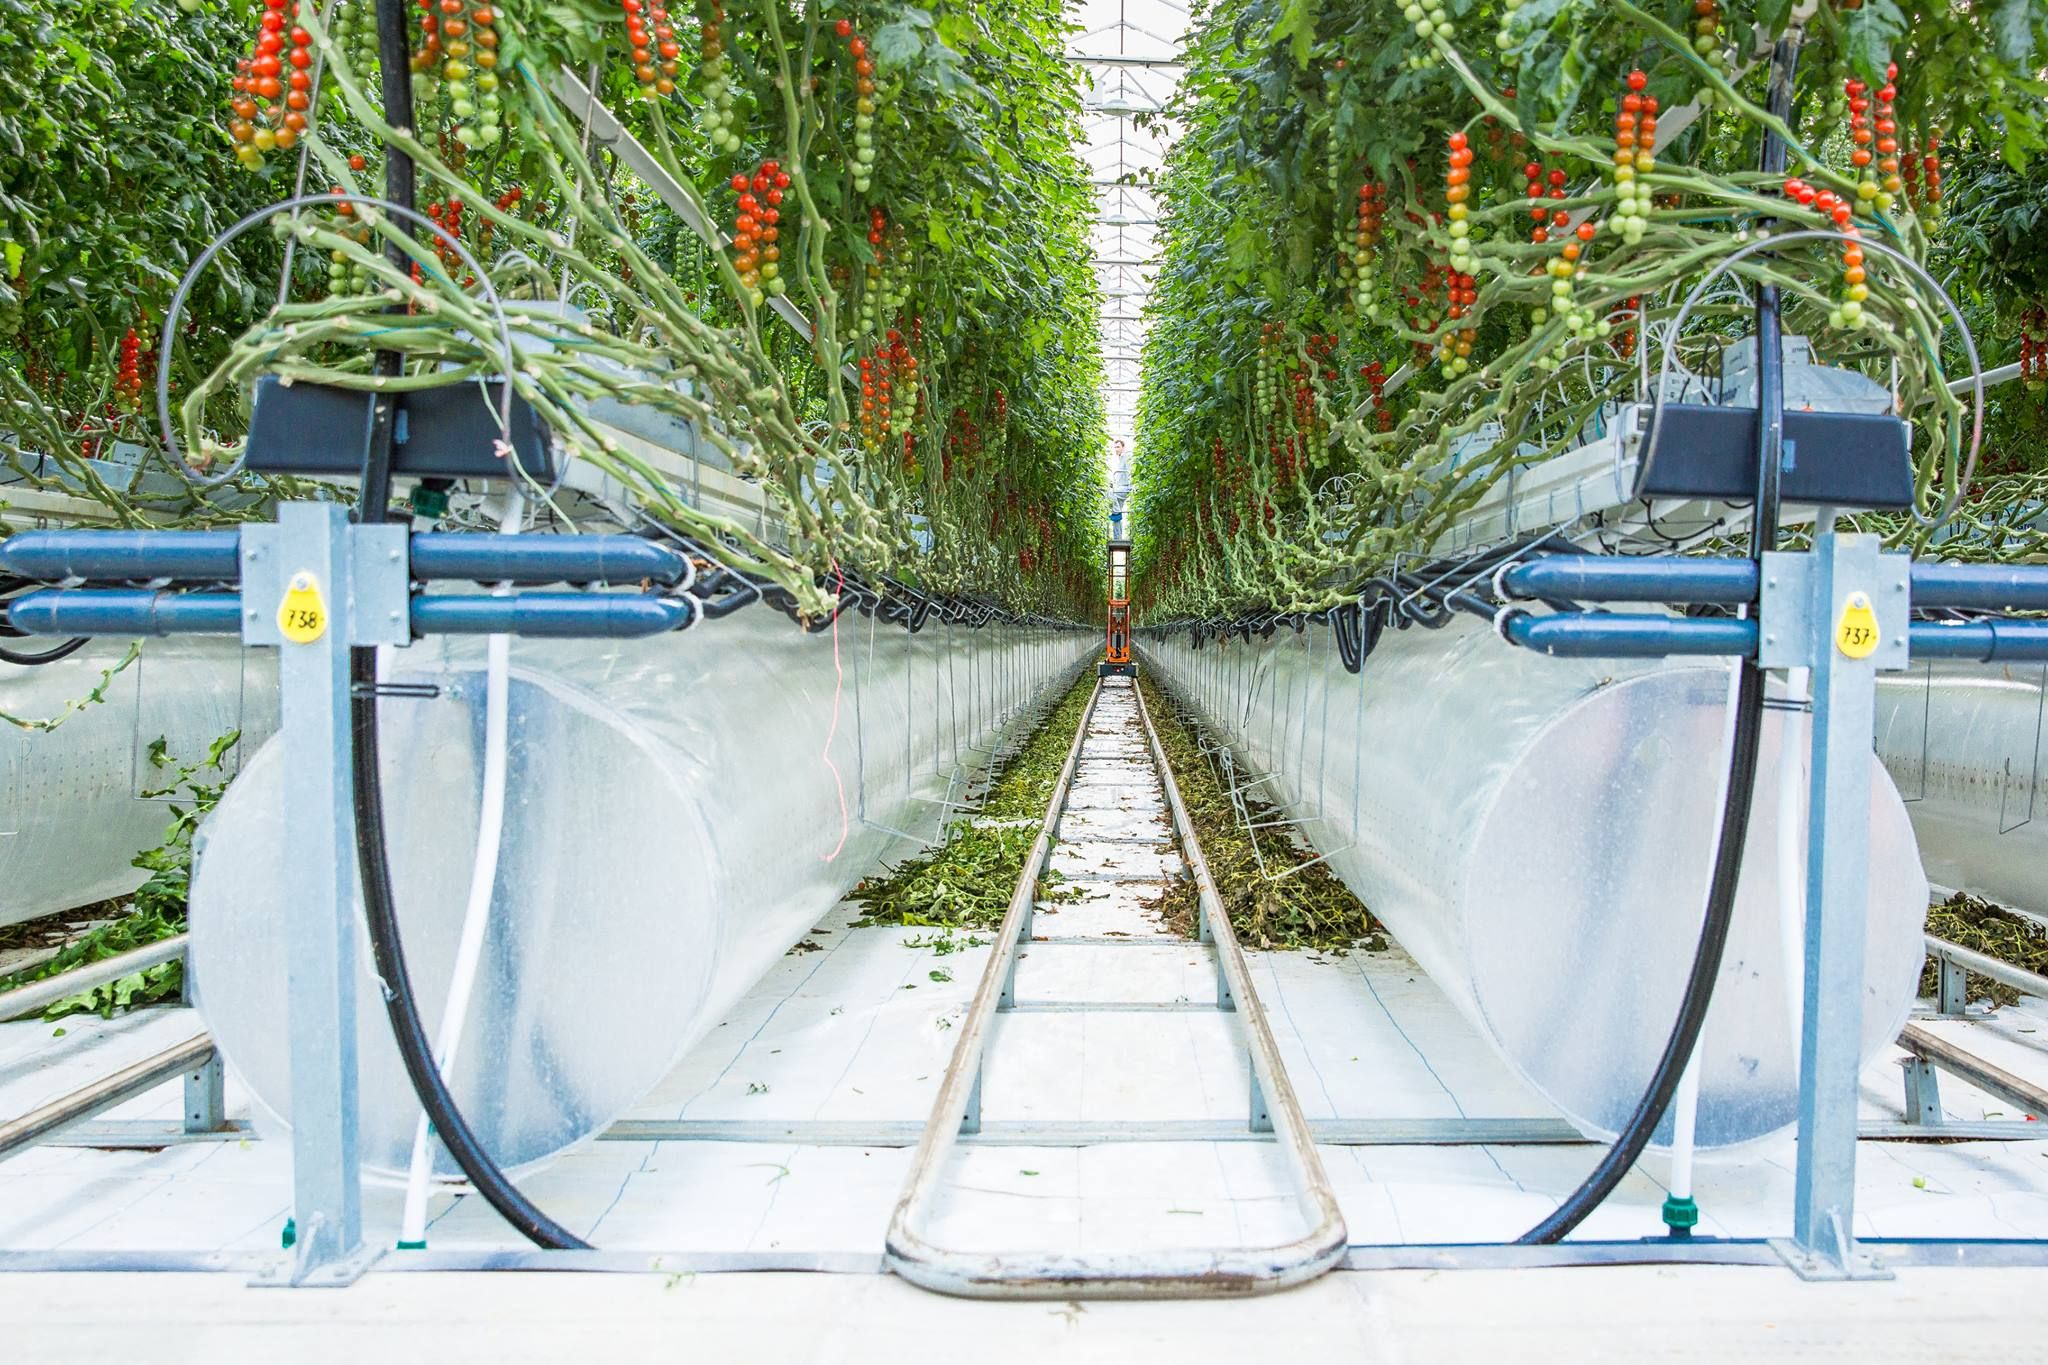 Smart farming for food security